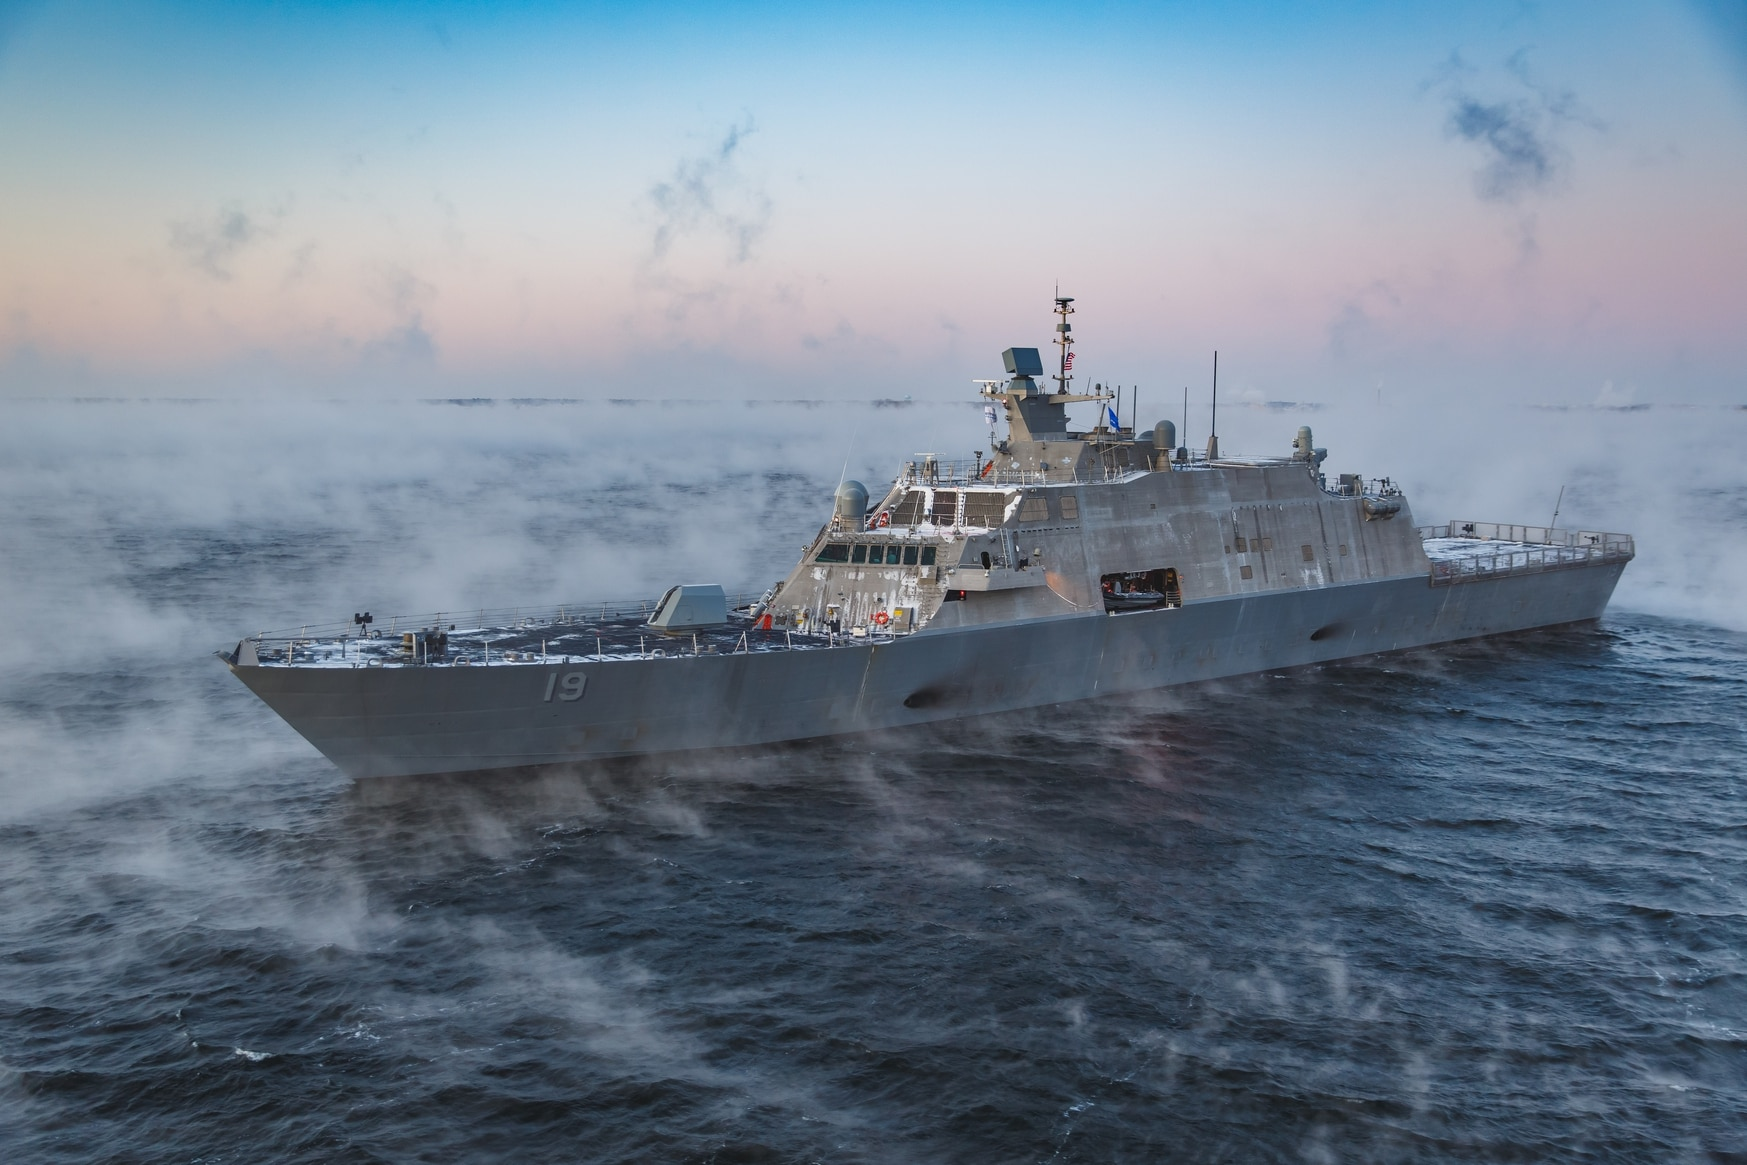 LCS 19 (St. Louis) Acceptance Trials. December 2019. (Photographed courtesy of Lockheed Martin)